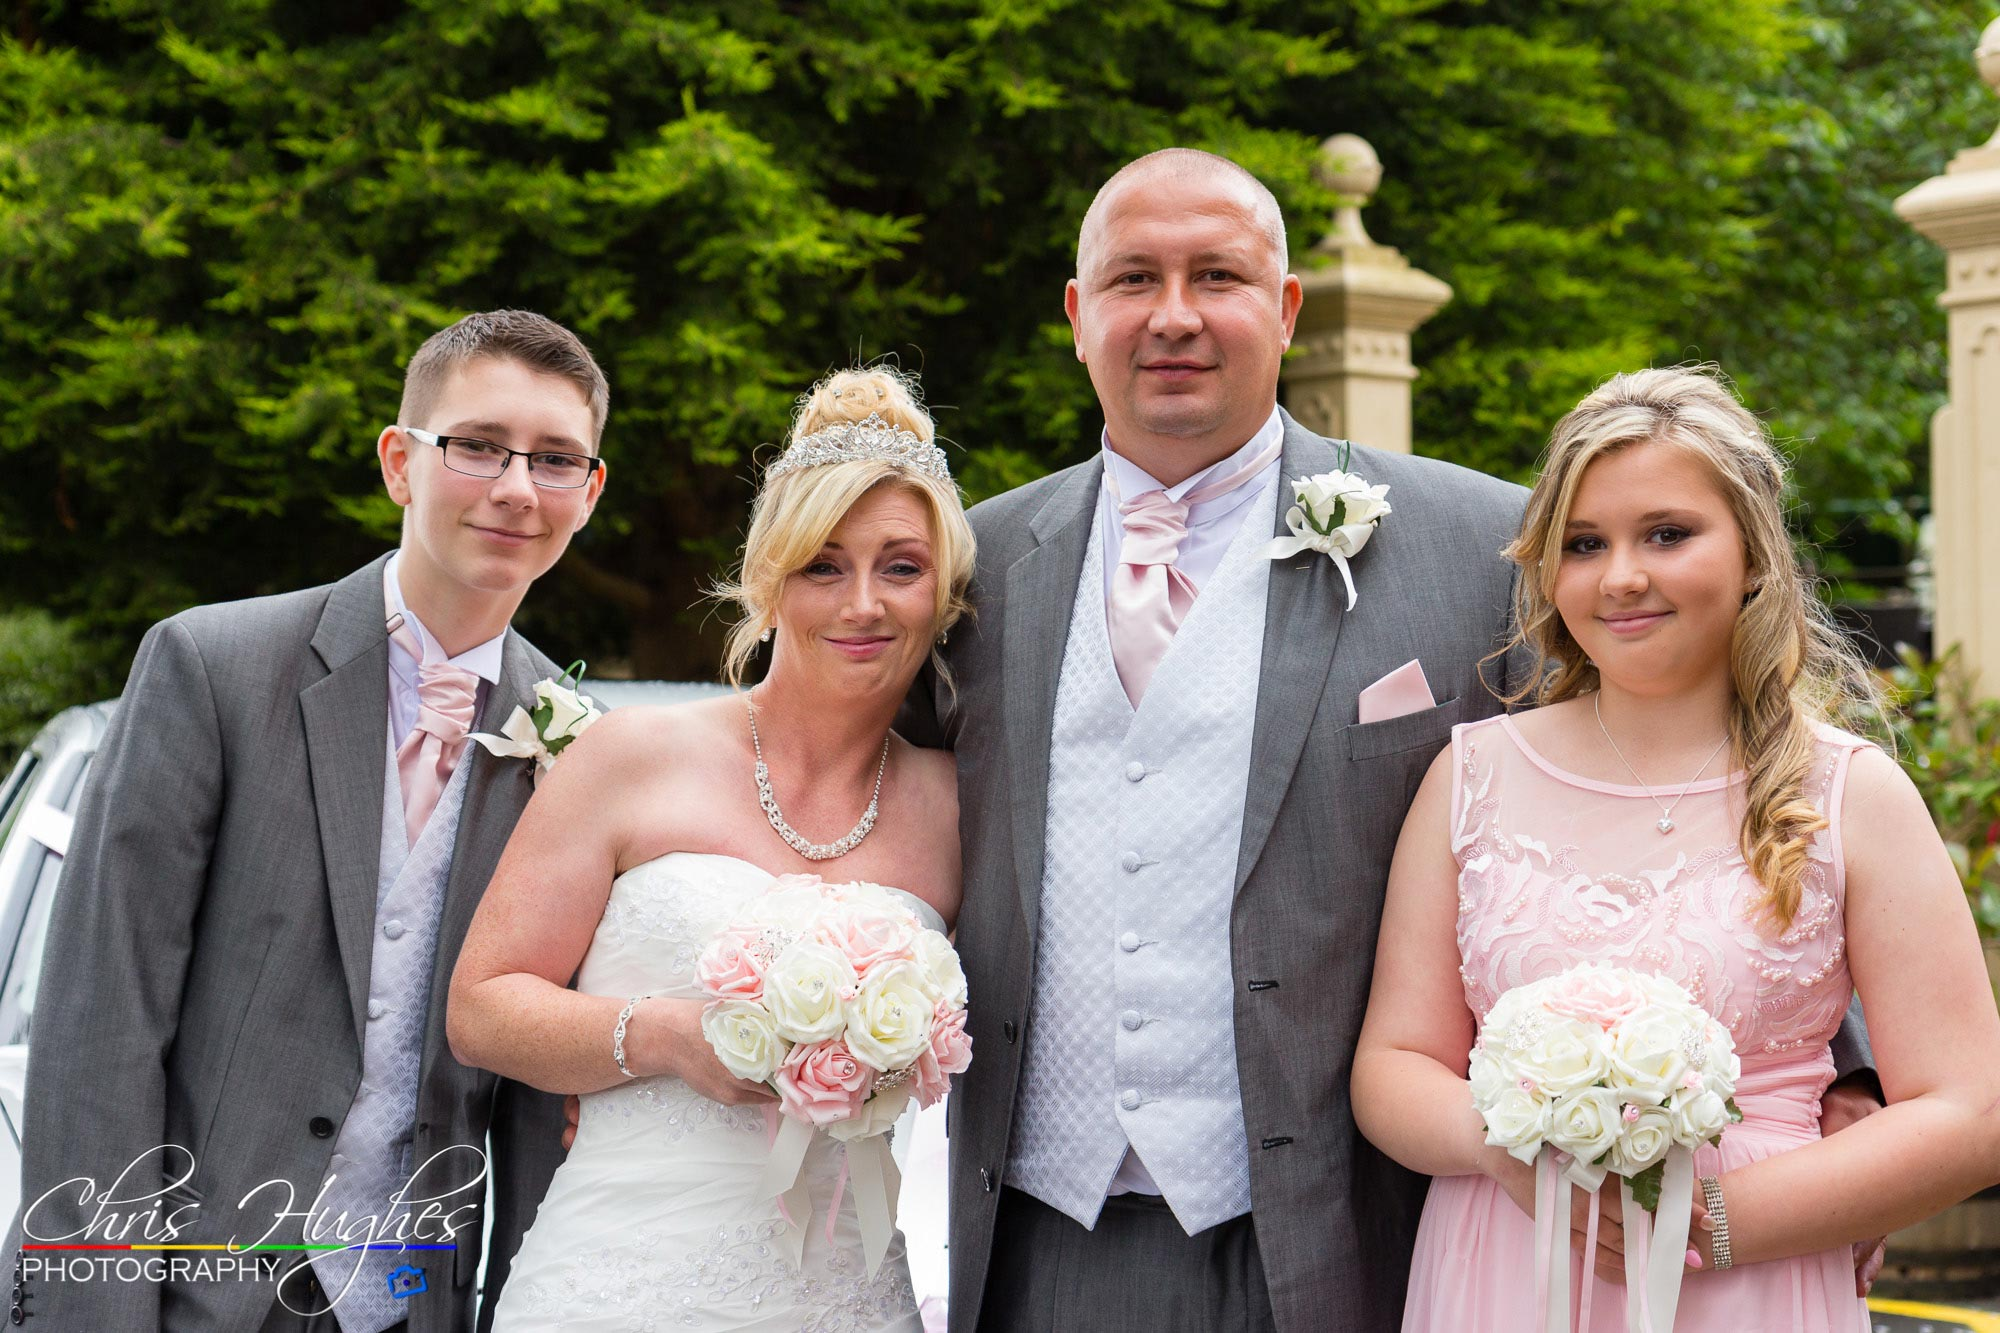 Wedding Photography Durham provided by Chris Hughes Photography